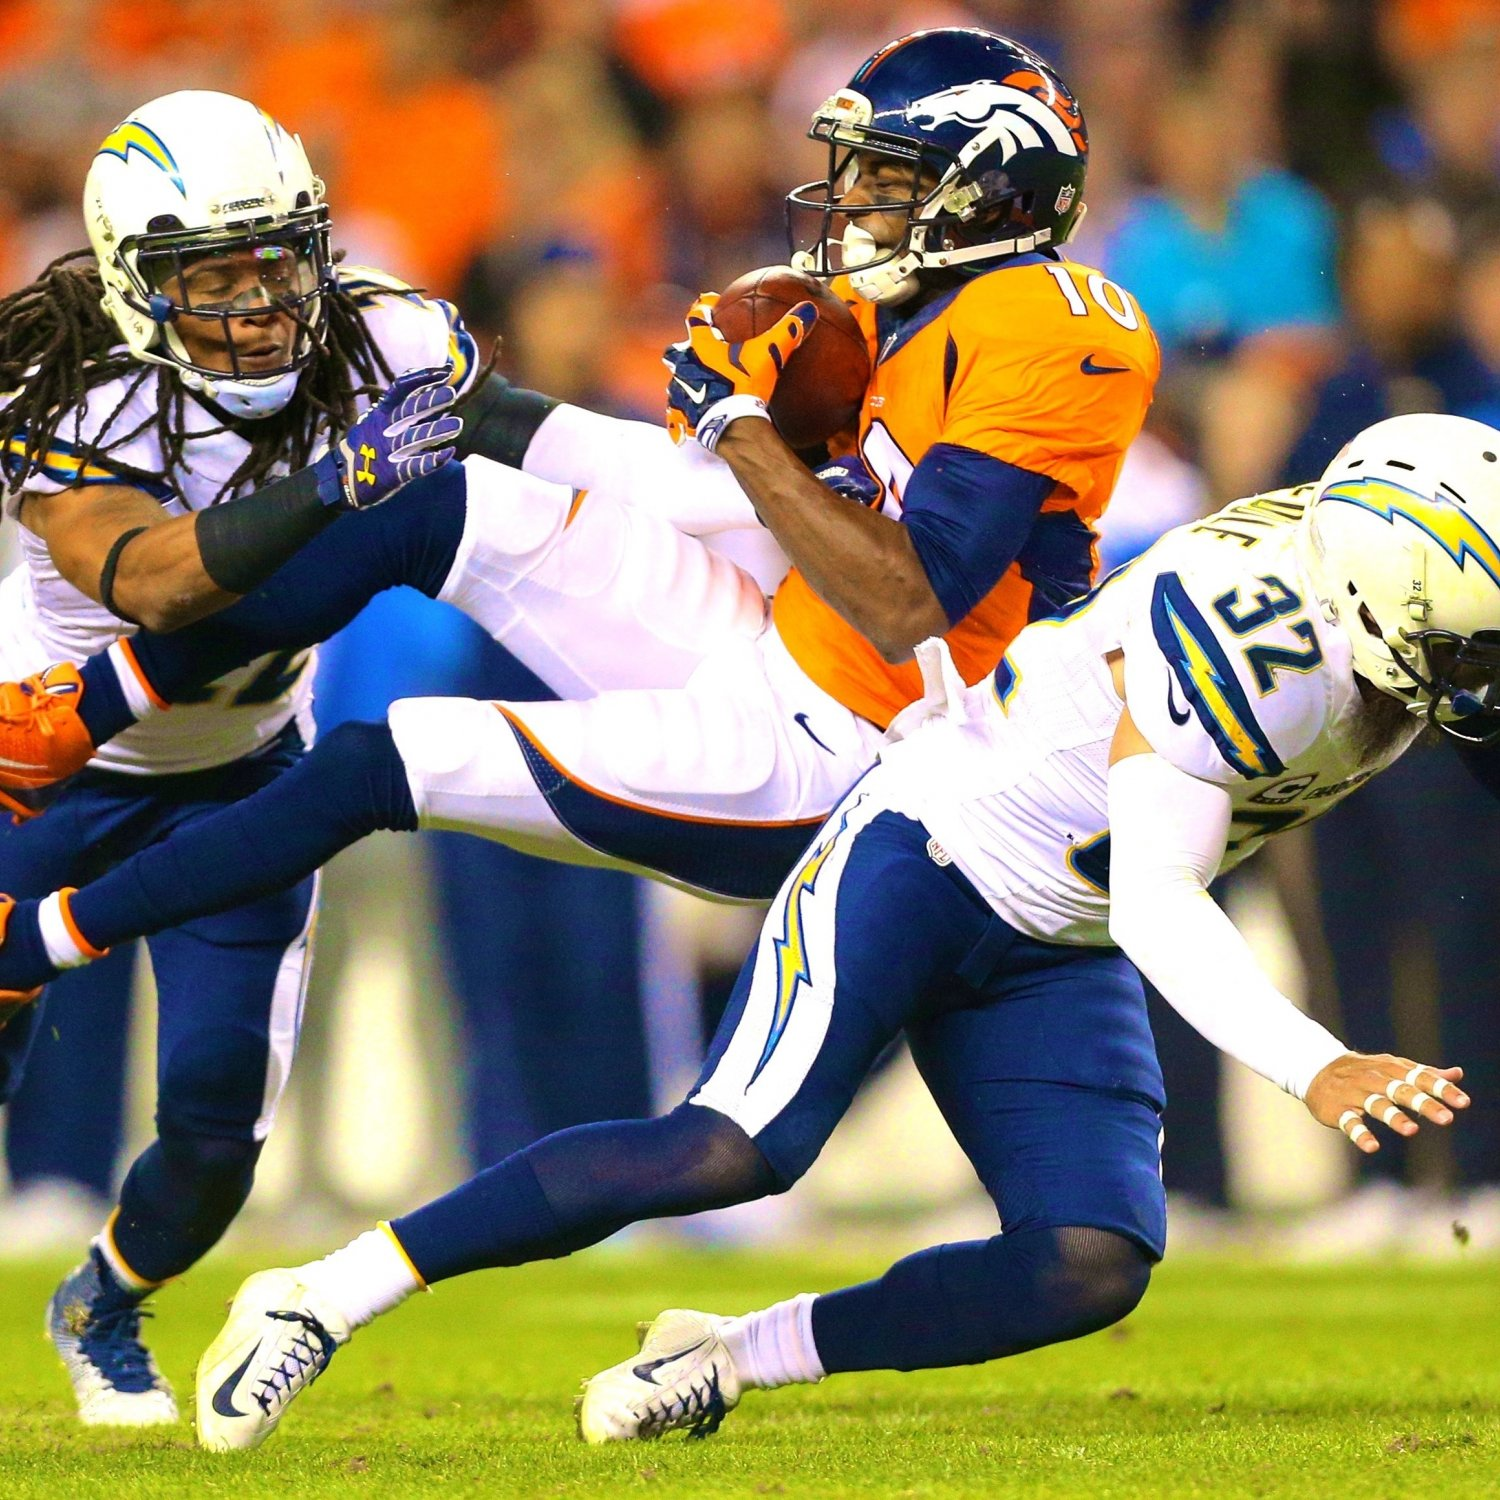 San Diego Chargers Bye Week 2014: Injuries Catch Up With Chargers In Big Thursday Night Loss